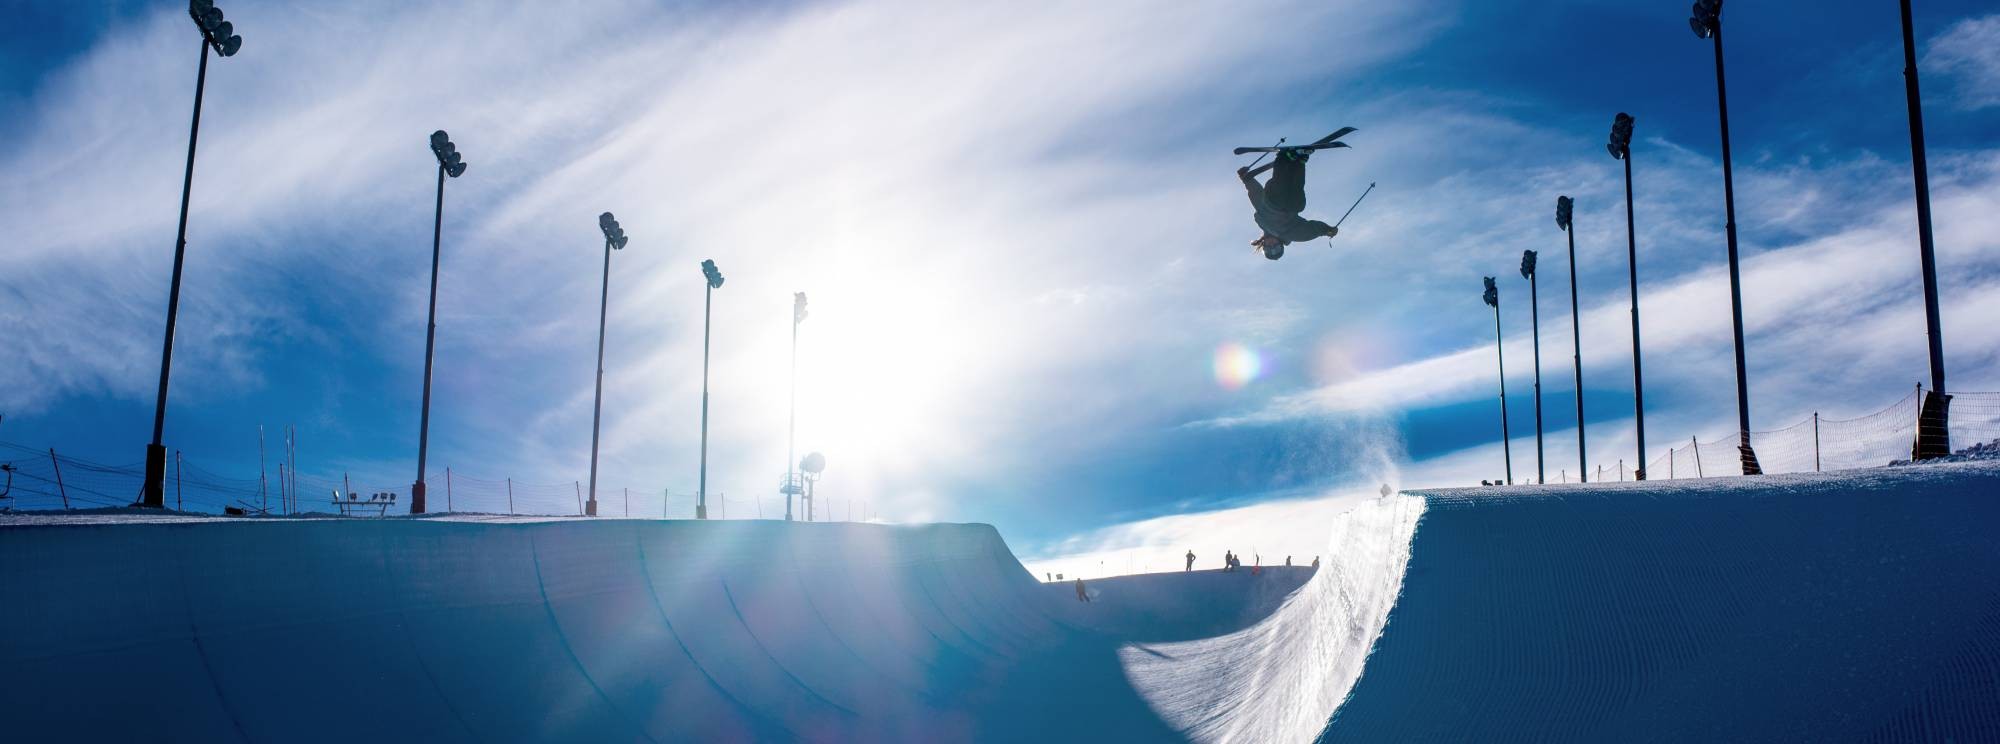 Skier in a half pipe